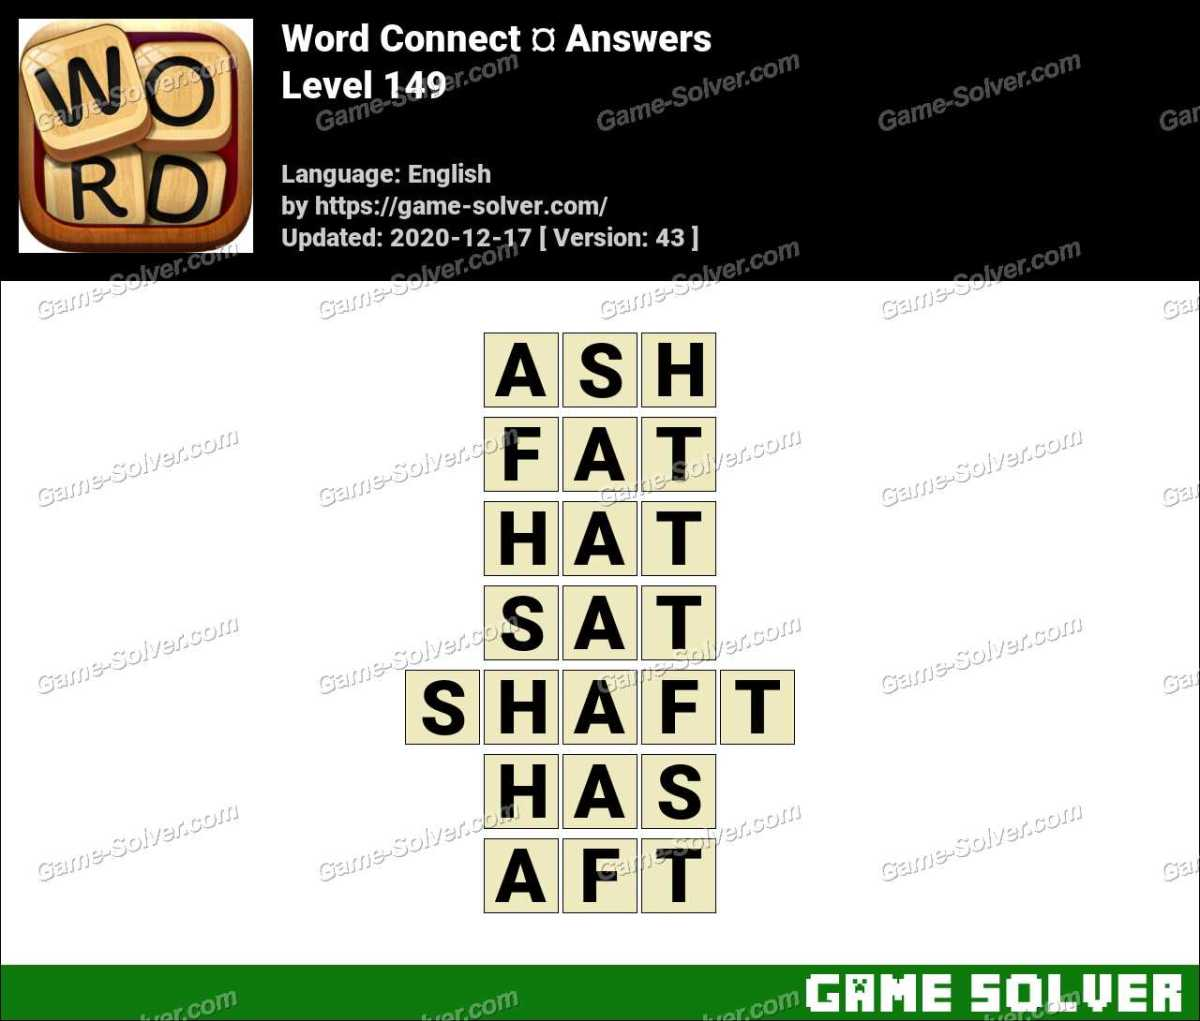 Word Connect Level 149 Answers